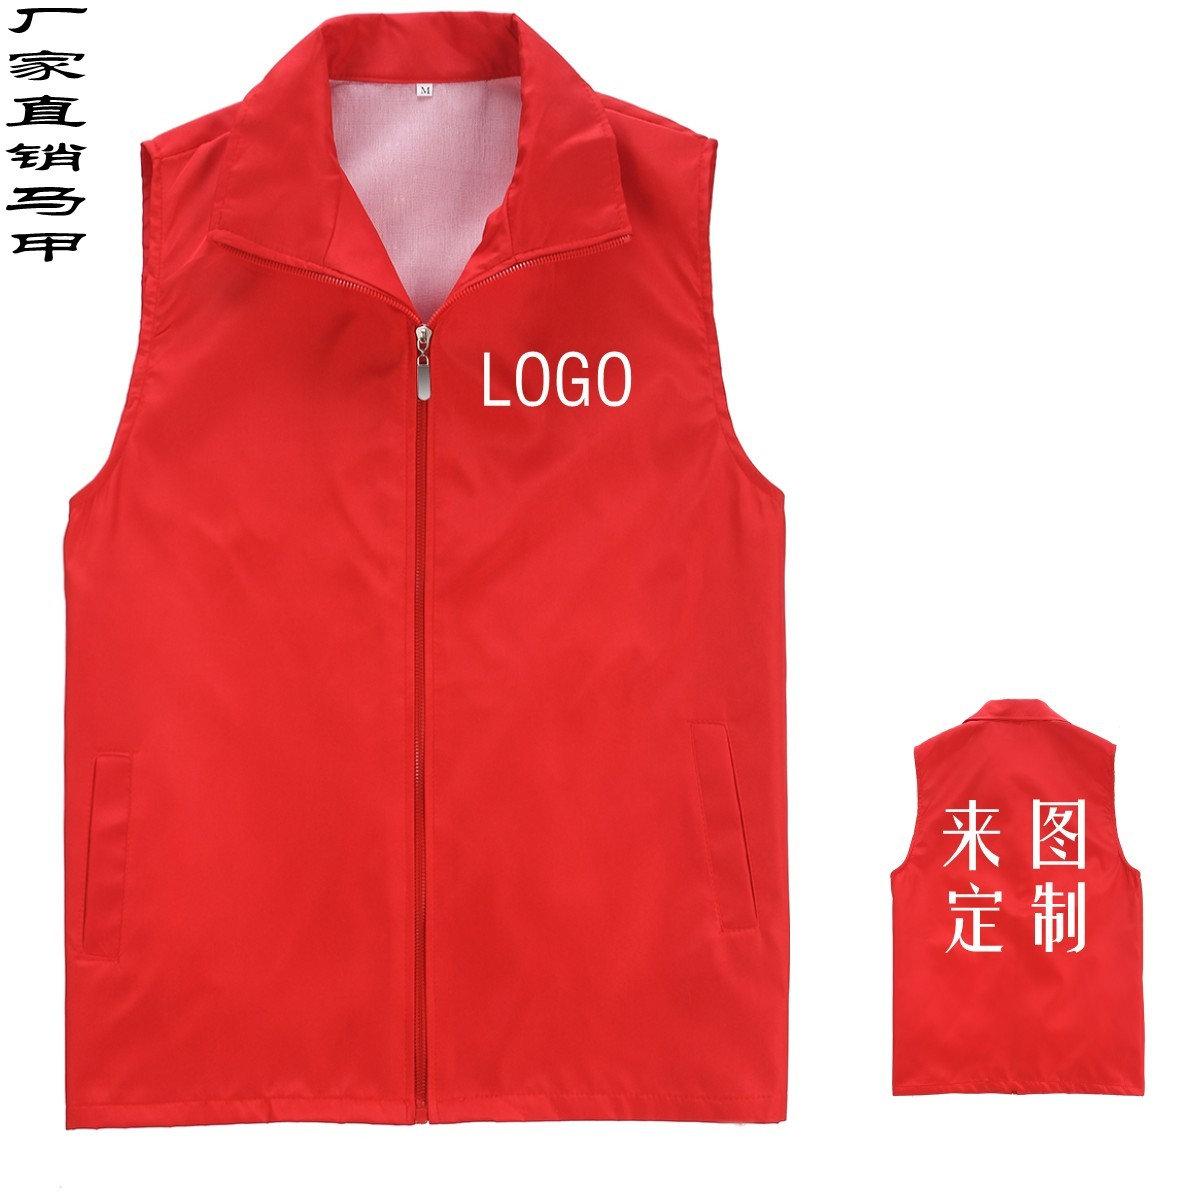 Come to map to customize volunteer vest for men and women China Telecom China Mobile China contact work clothes